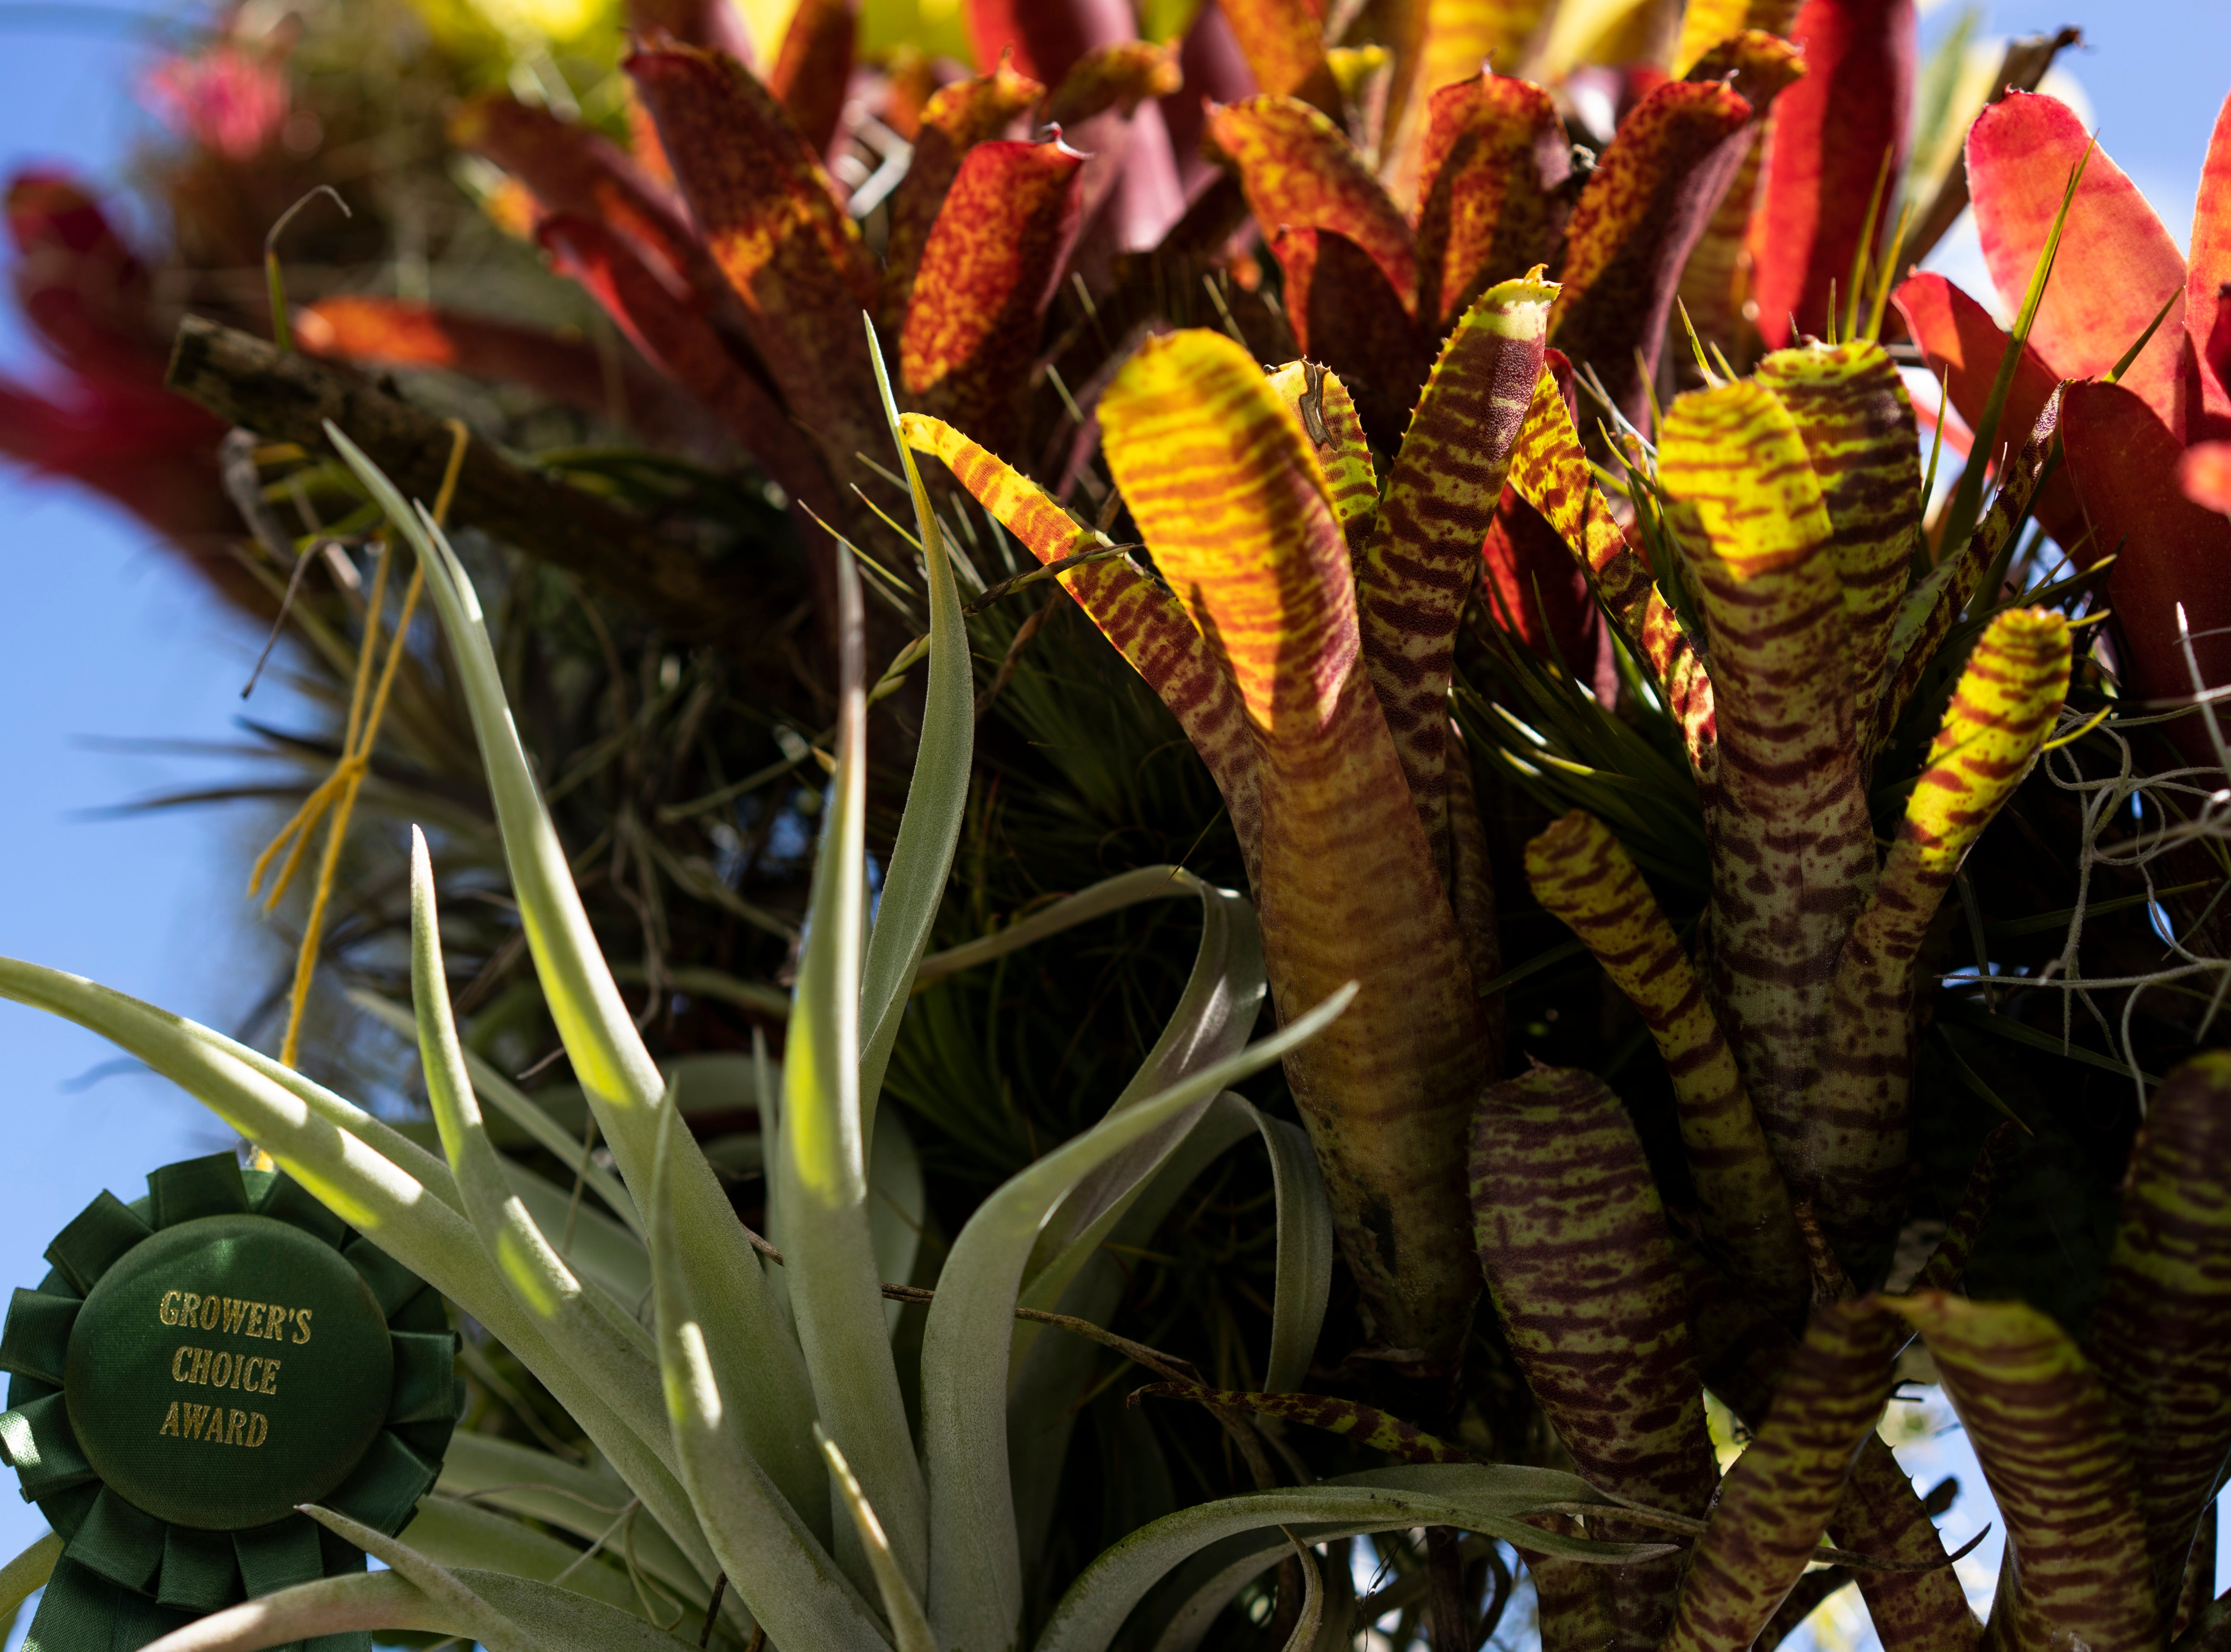 Some Bromeliad, a type of air plant, hands at Joel Toledo's Green Door Nursery in East Naples. Toledo will be offering a class for making air plant wreaths in December.